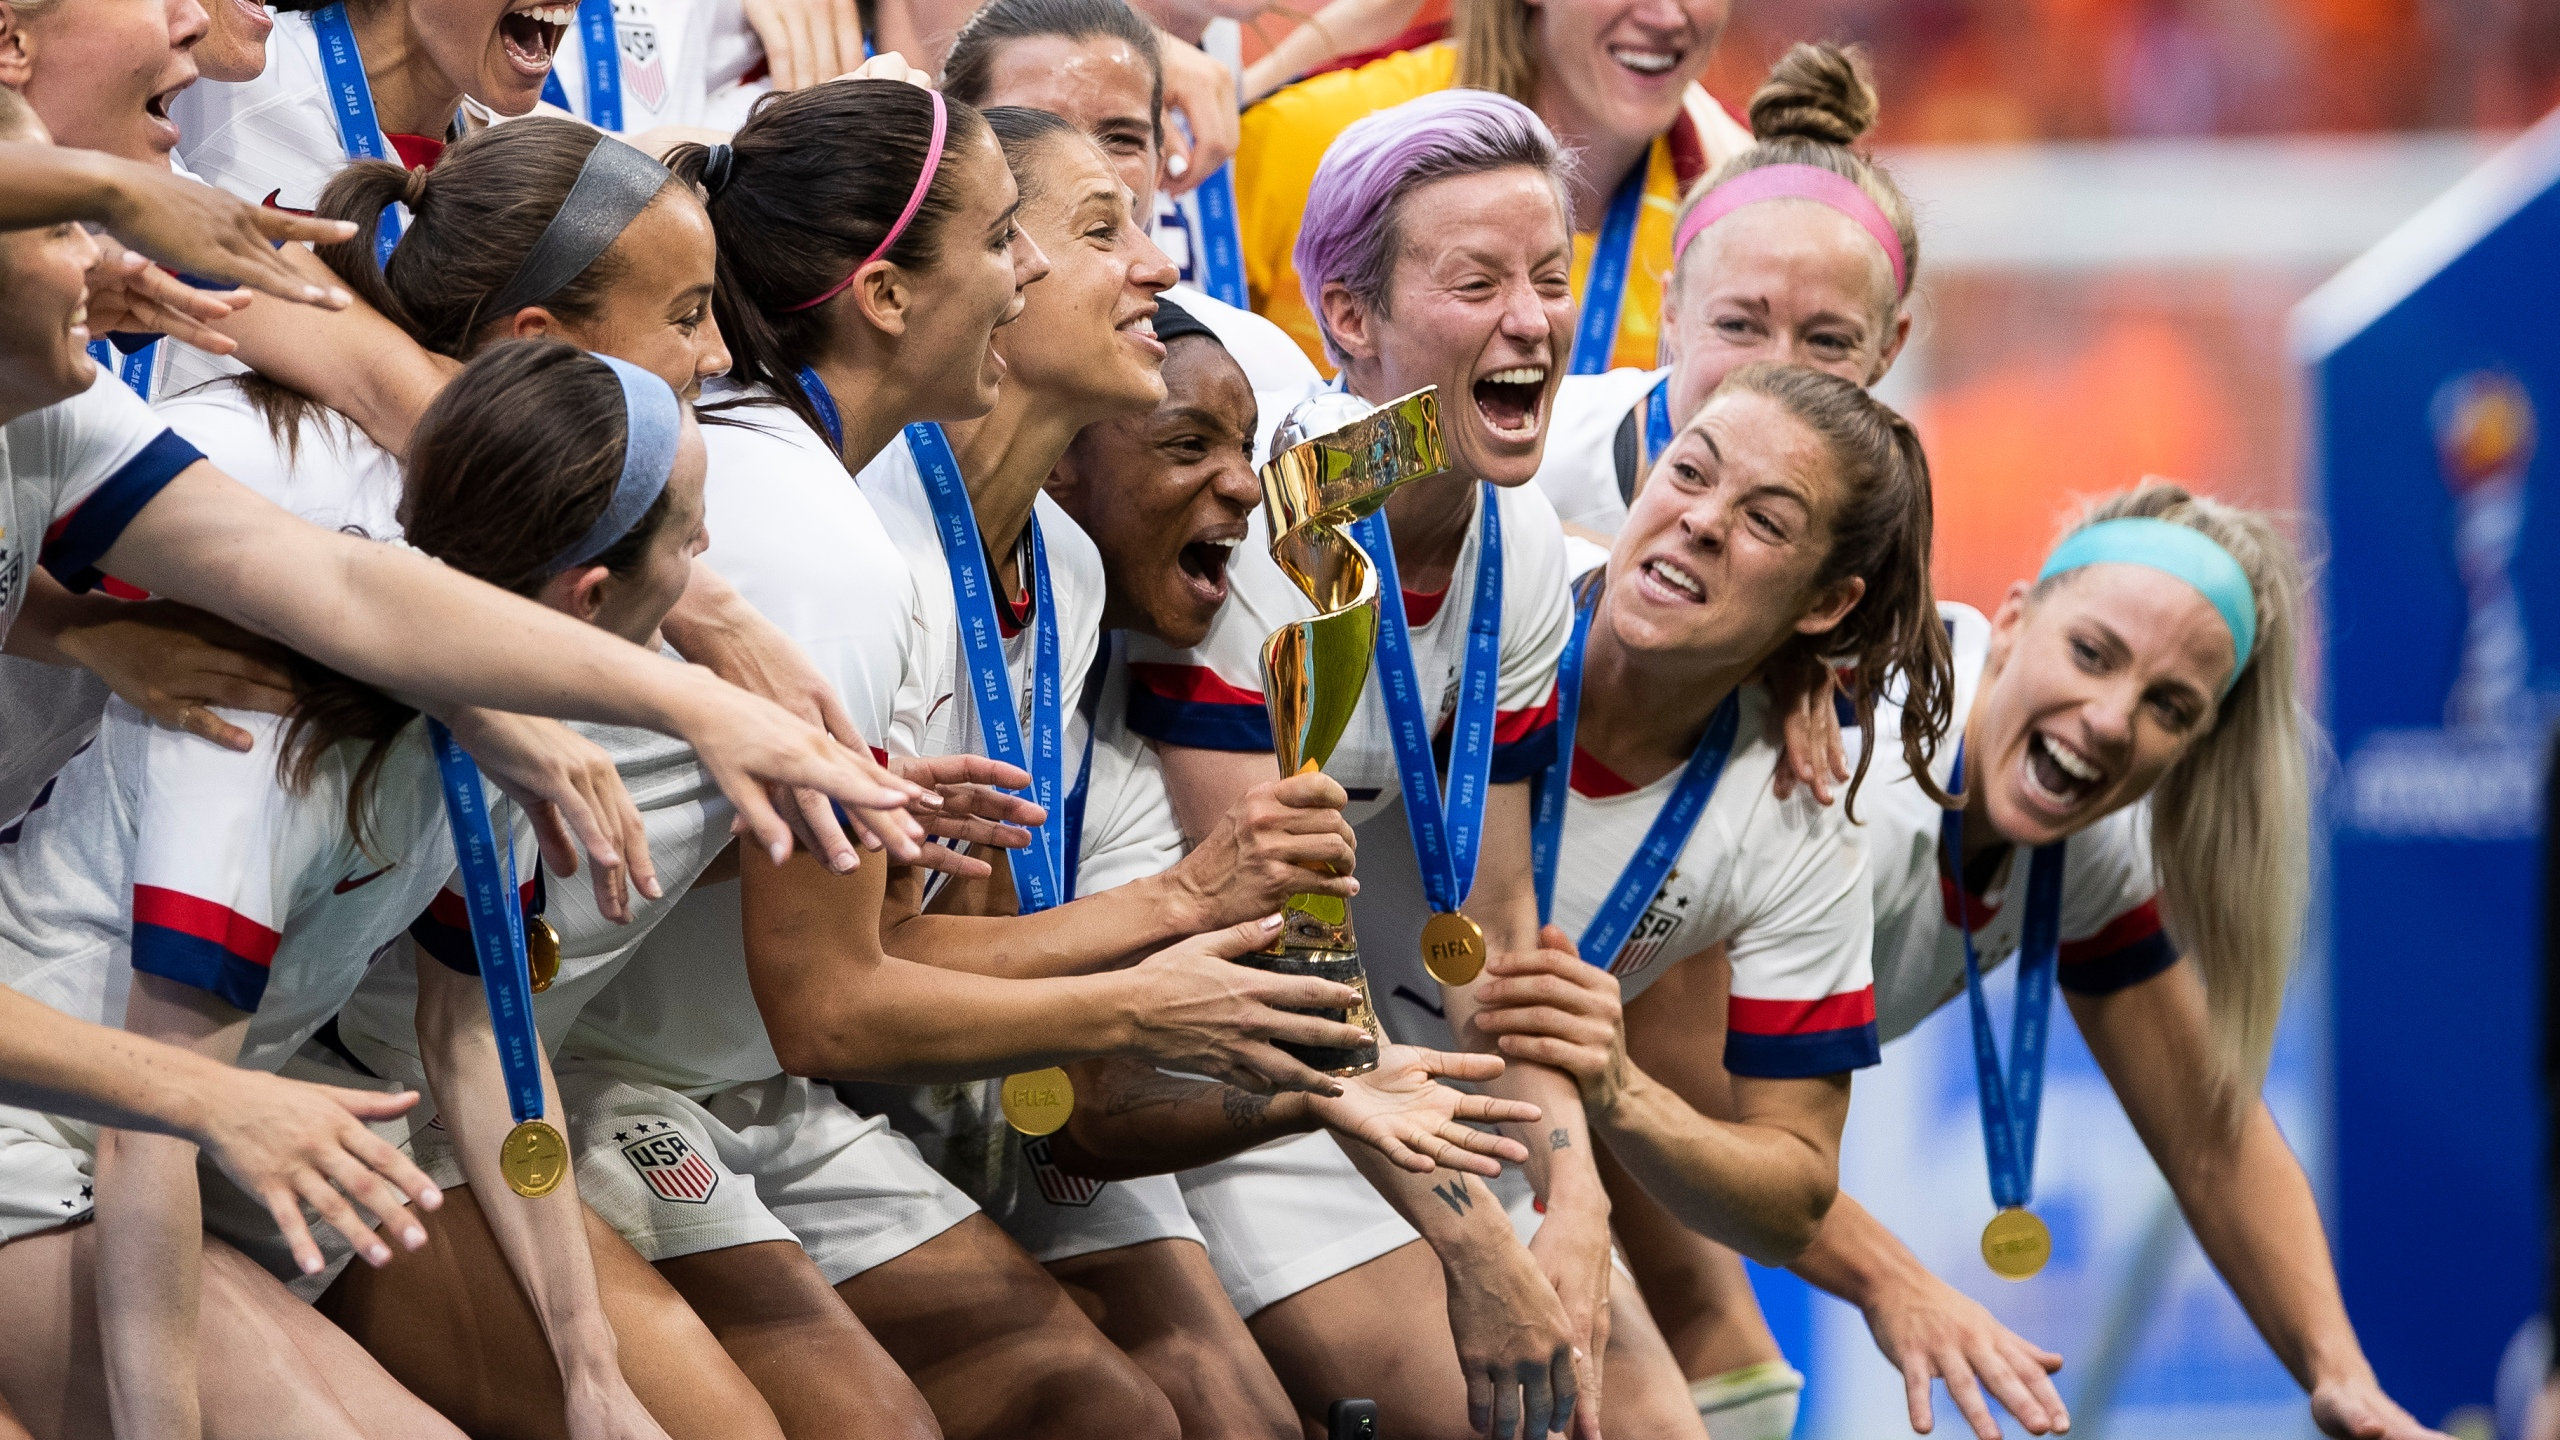 Players of the U.S. Women's National Team celebrate with their trophy after winning the 2019 FIFA Women's World Cup over the Netherlands in Lyon, France, on July 7, 2019. (Credit: Maja Hitij / Getty Images)